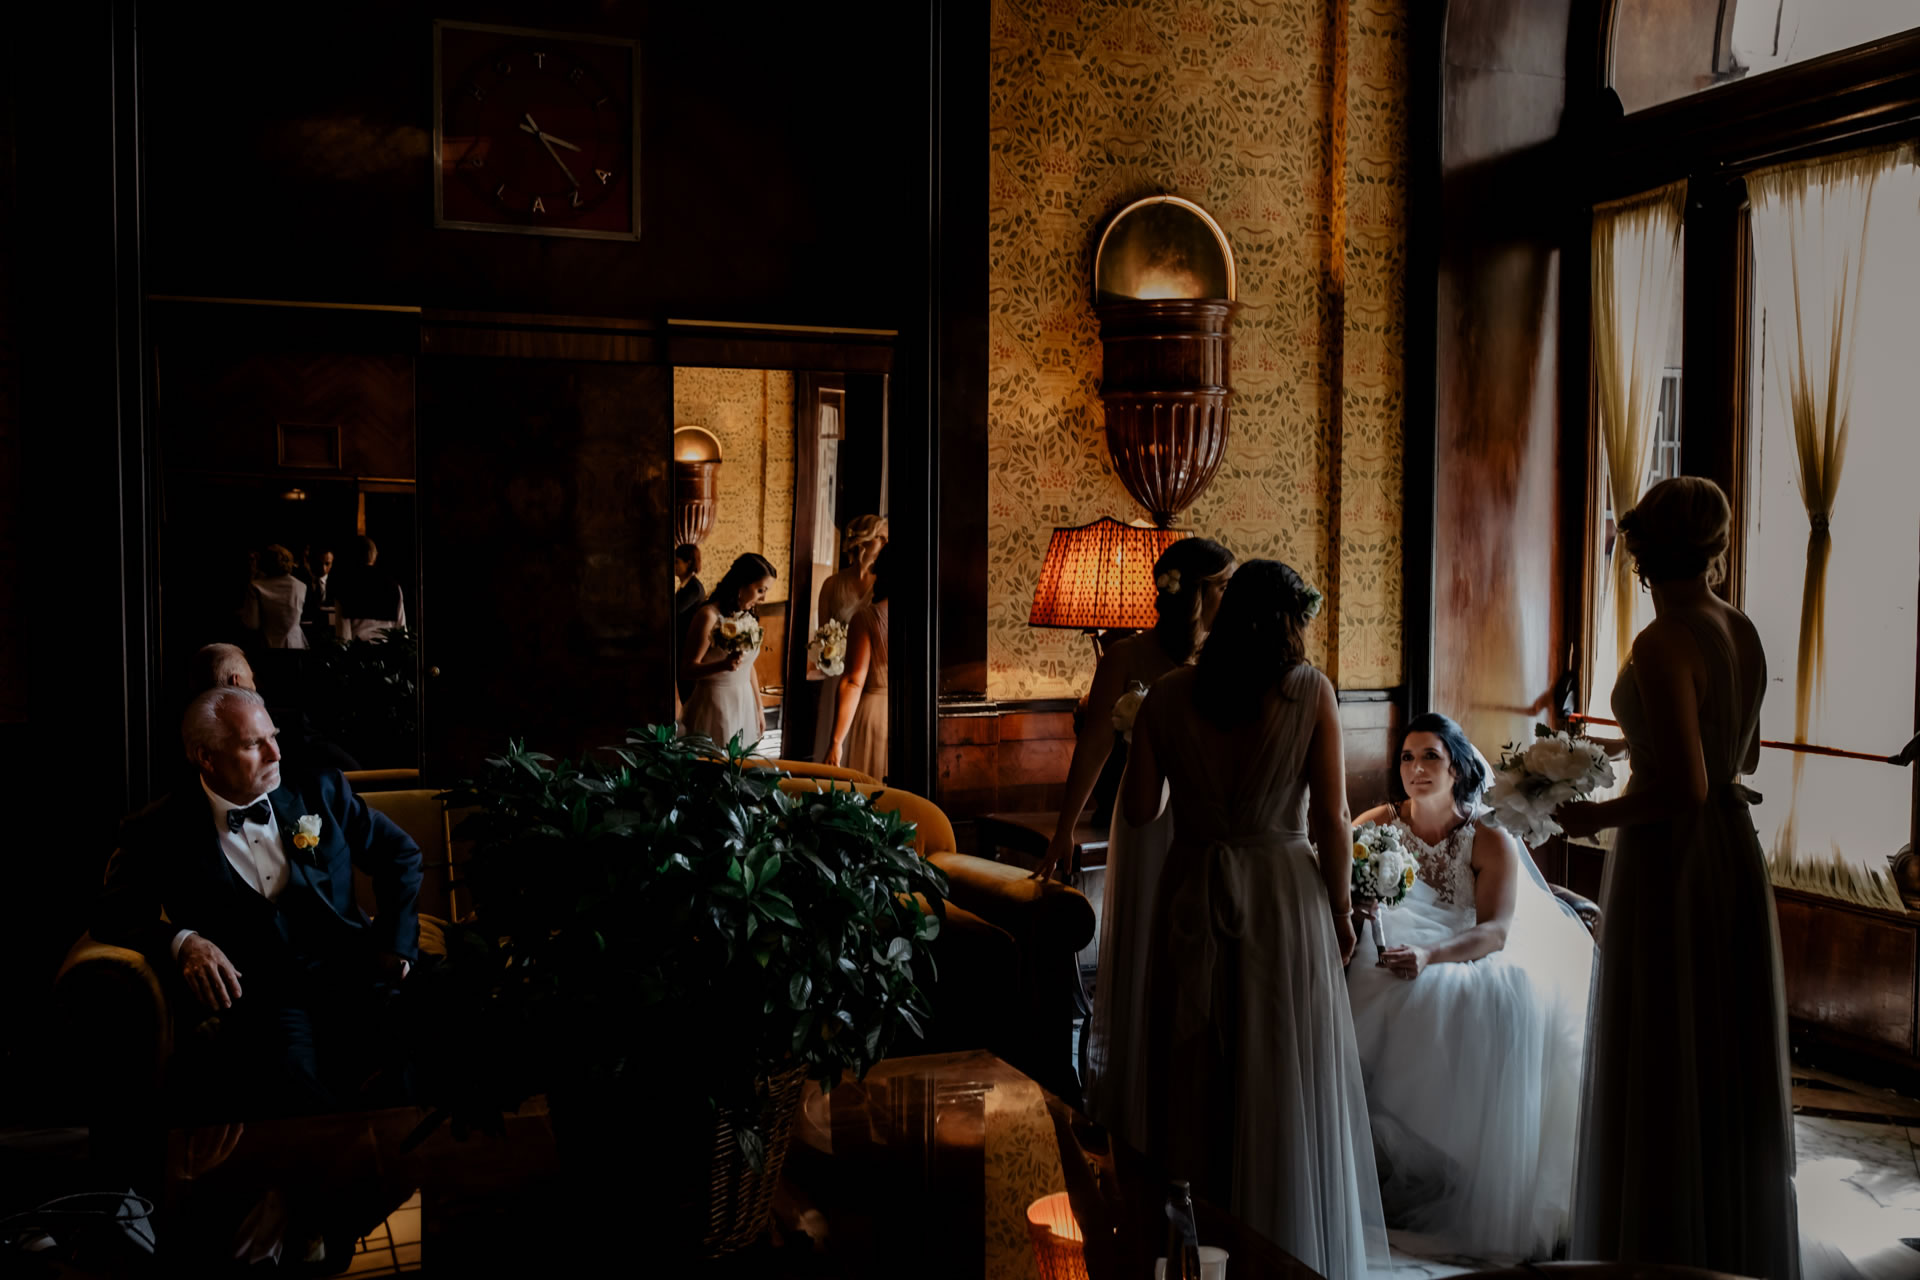 - 11 :: A breath-taking wedding in Rome, the eternal city :: Luxury wedding photography - 10 ::  - 11